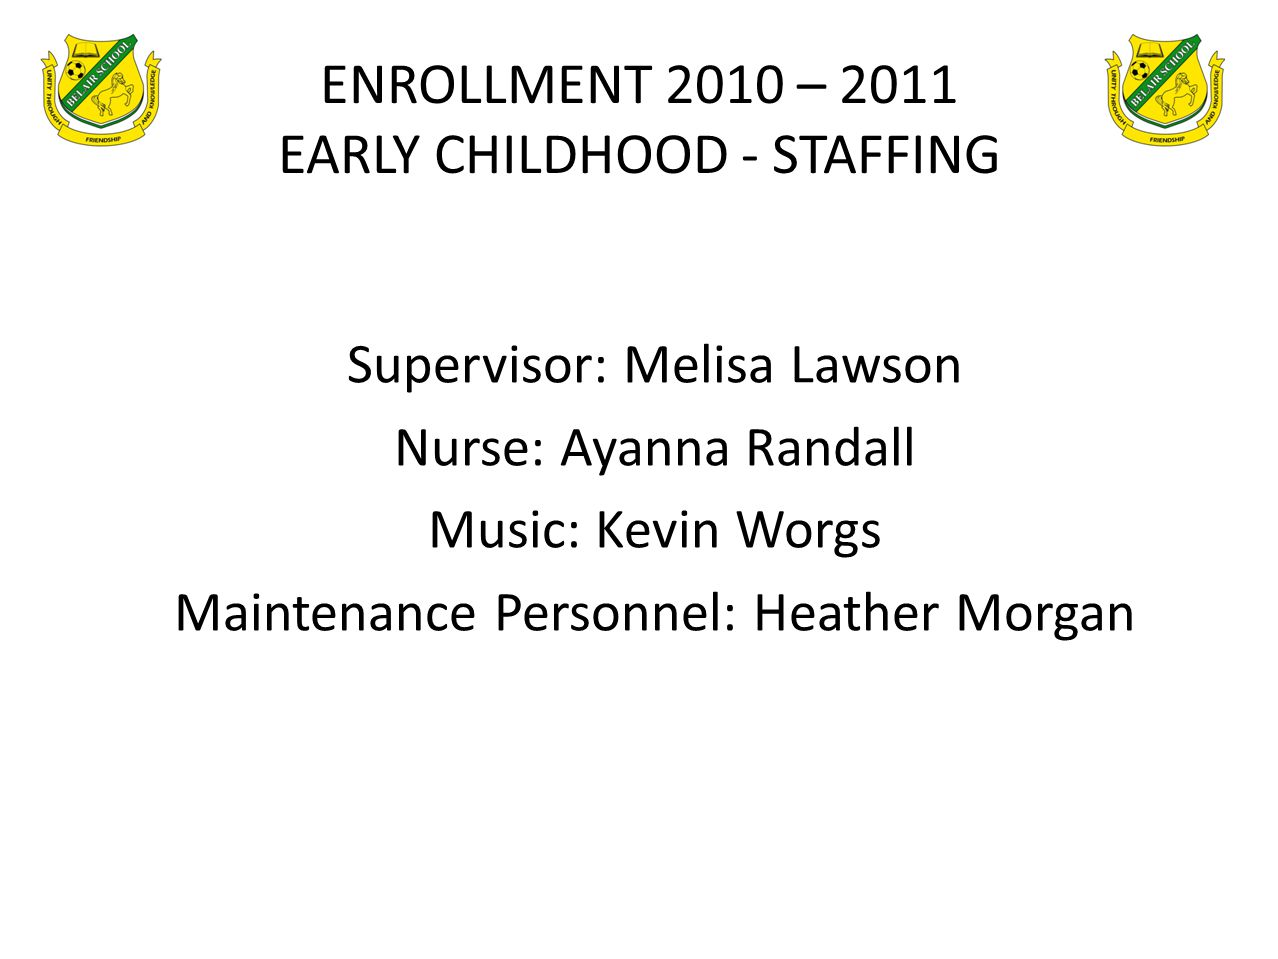 ENROLLMENT 2010 – 2011 EARLY CHILDHOOD - STAFFING